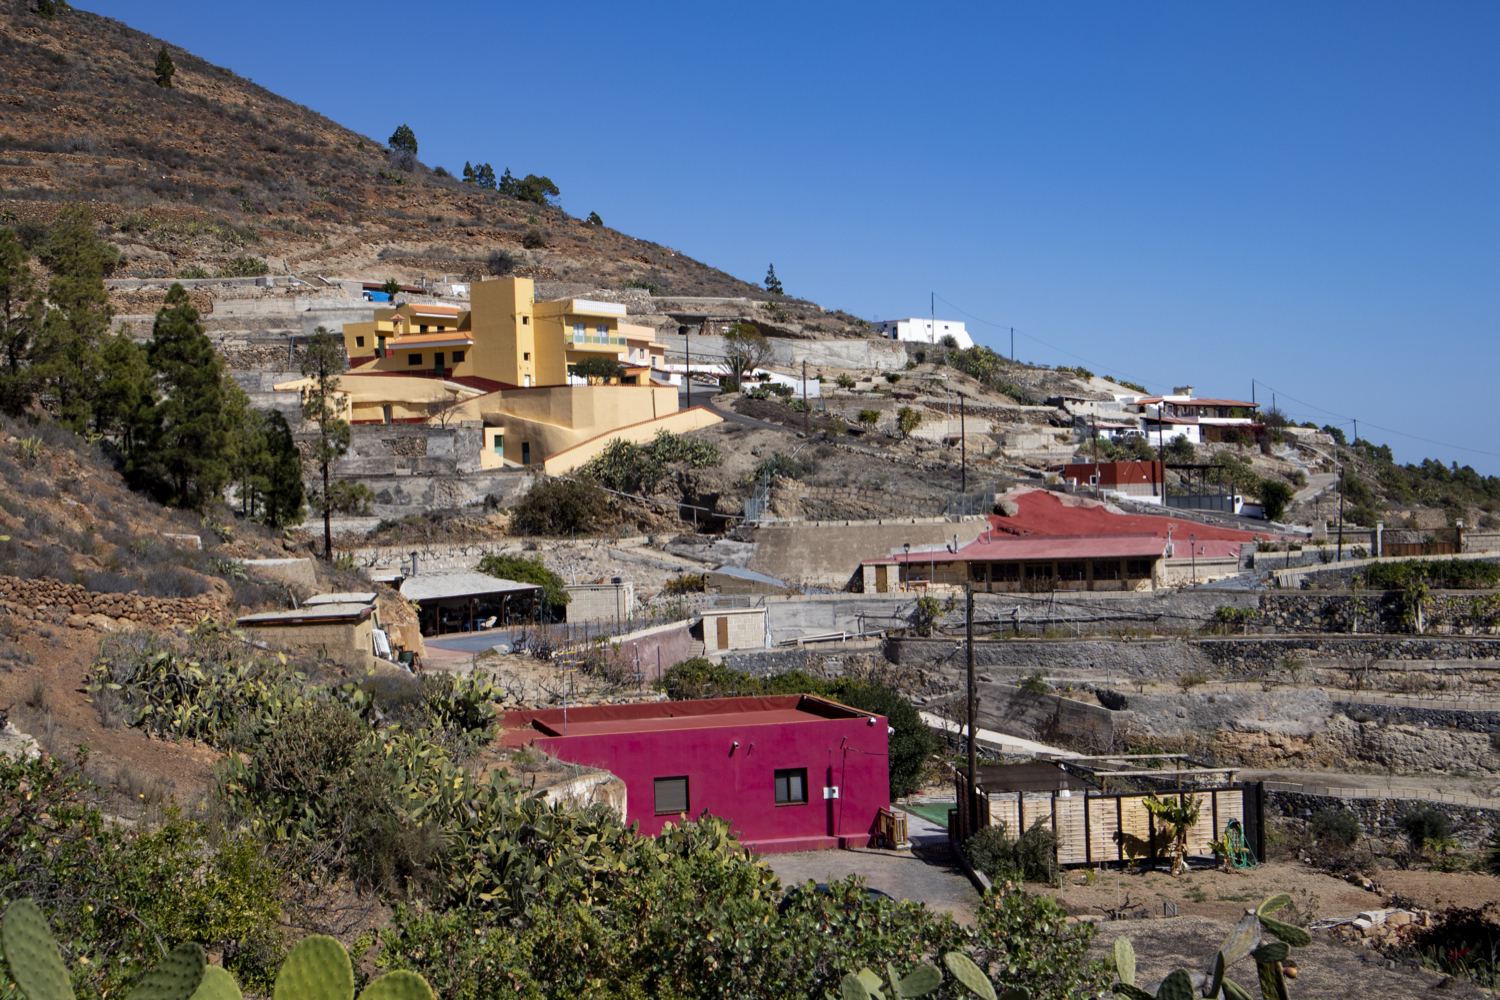 the hamlet of La Higuera